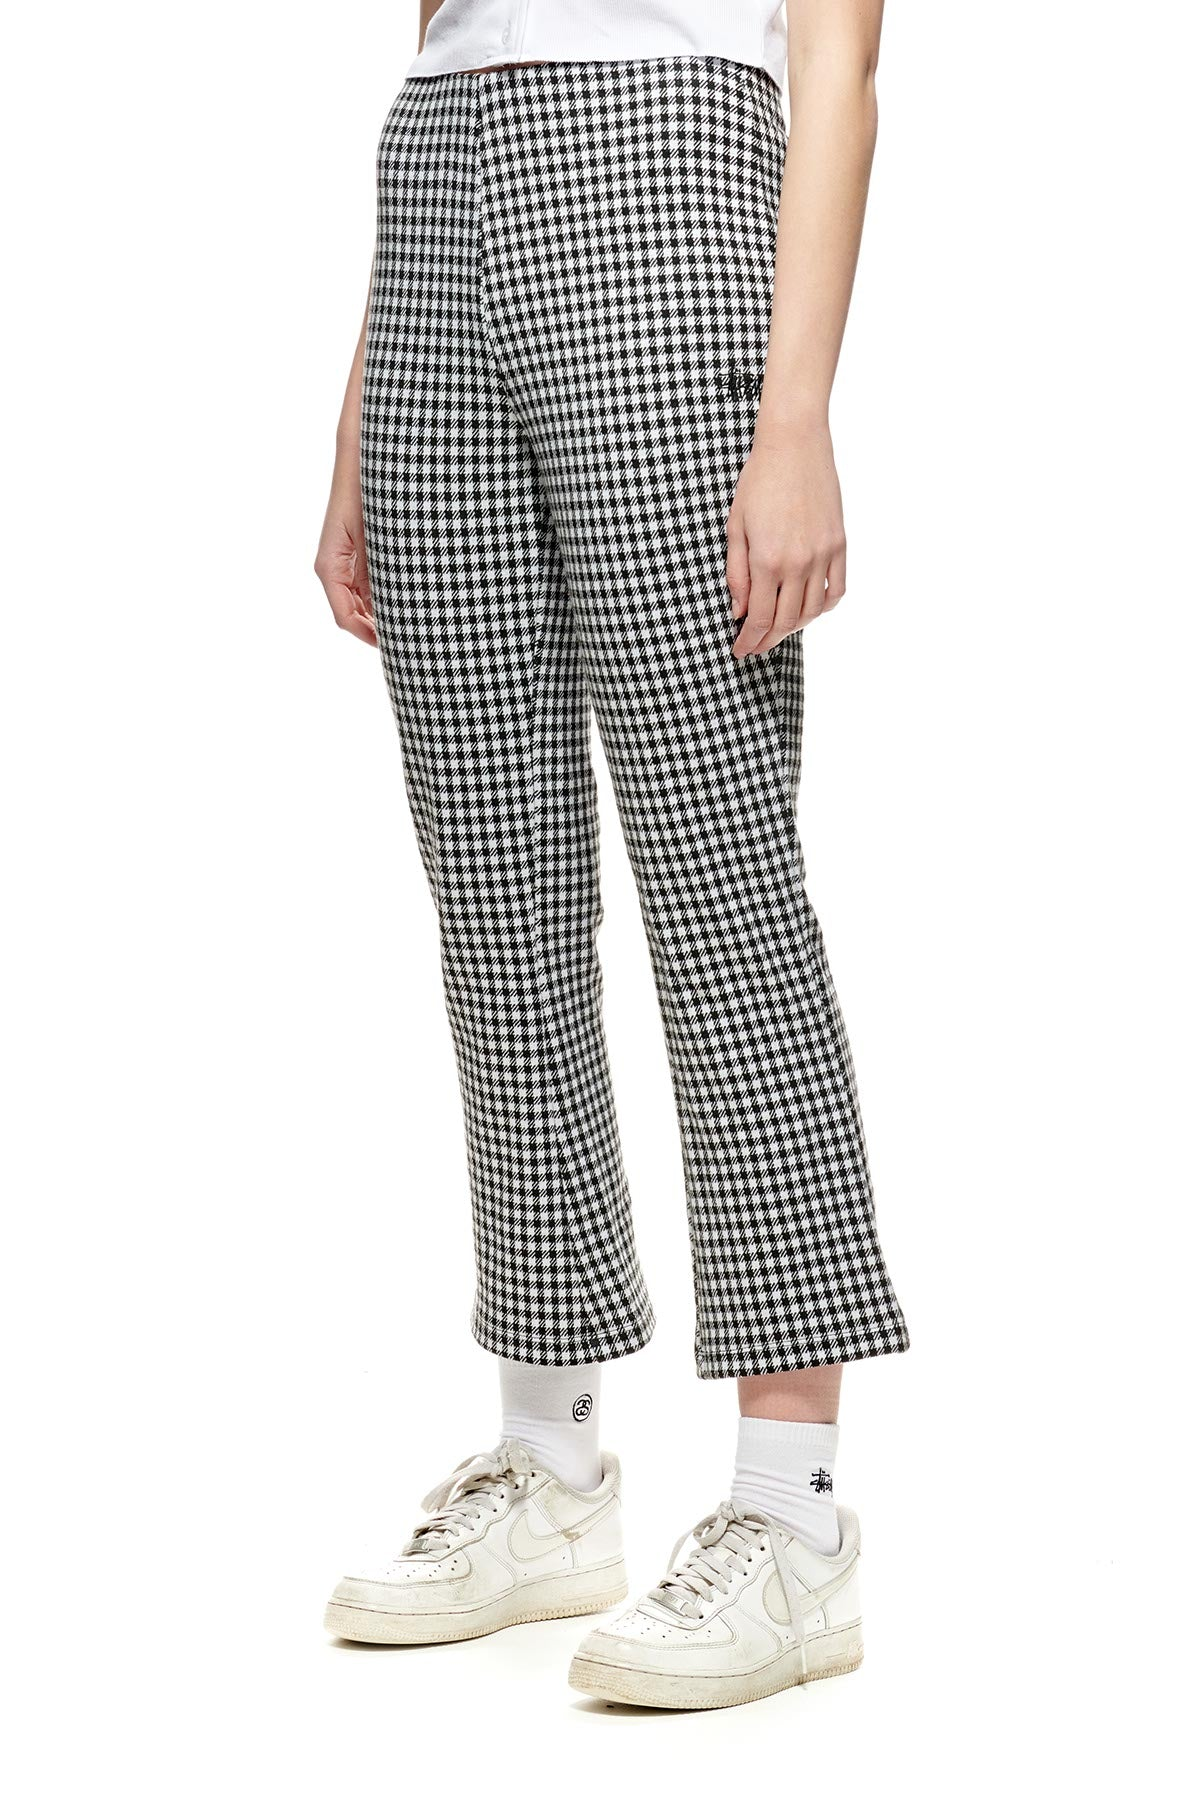 Montrose Knitted Check Pant